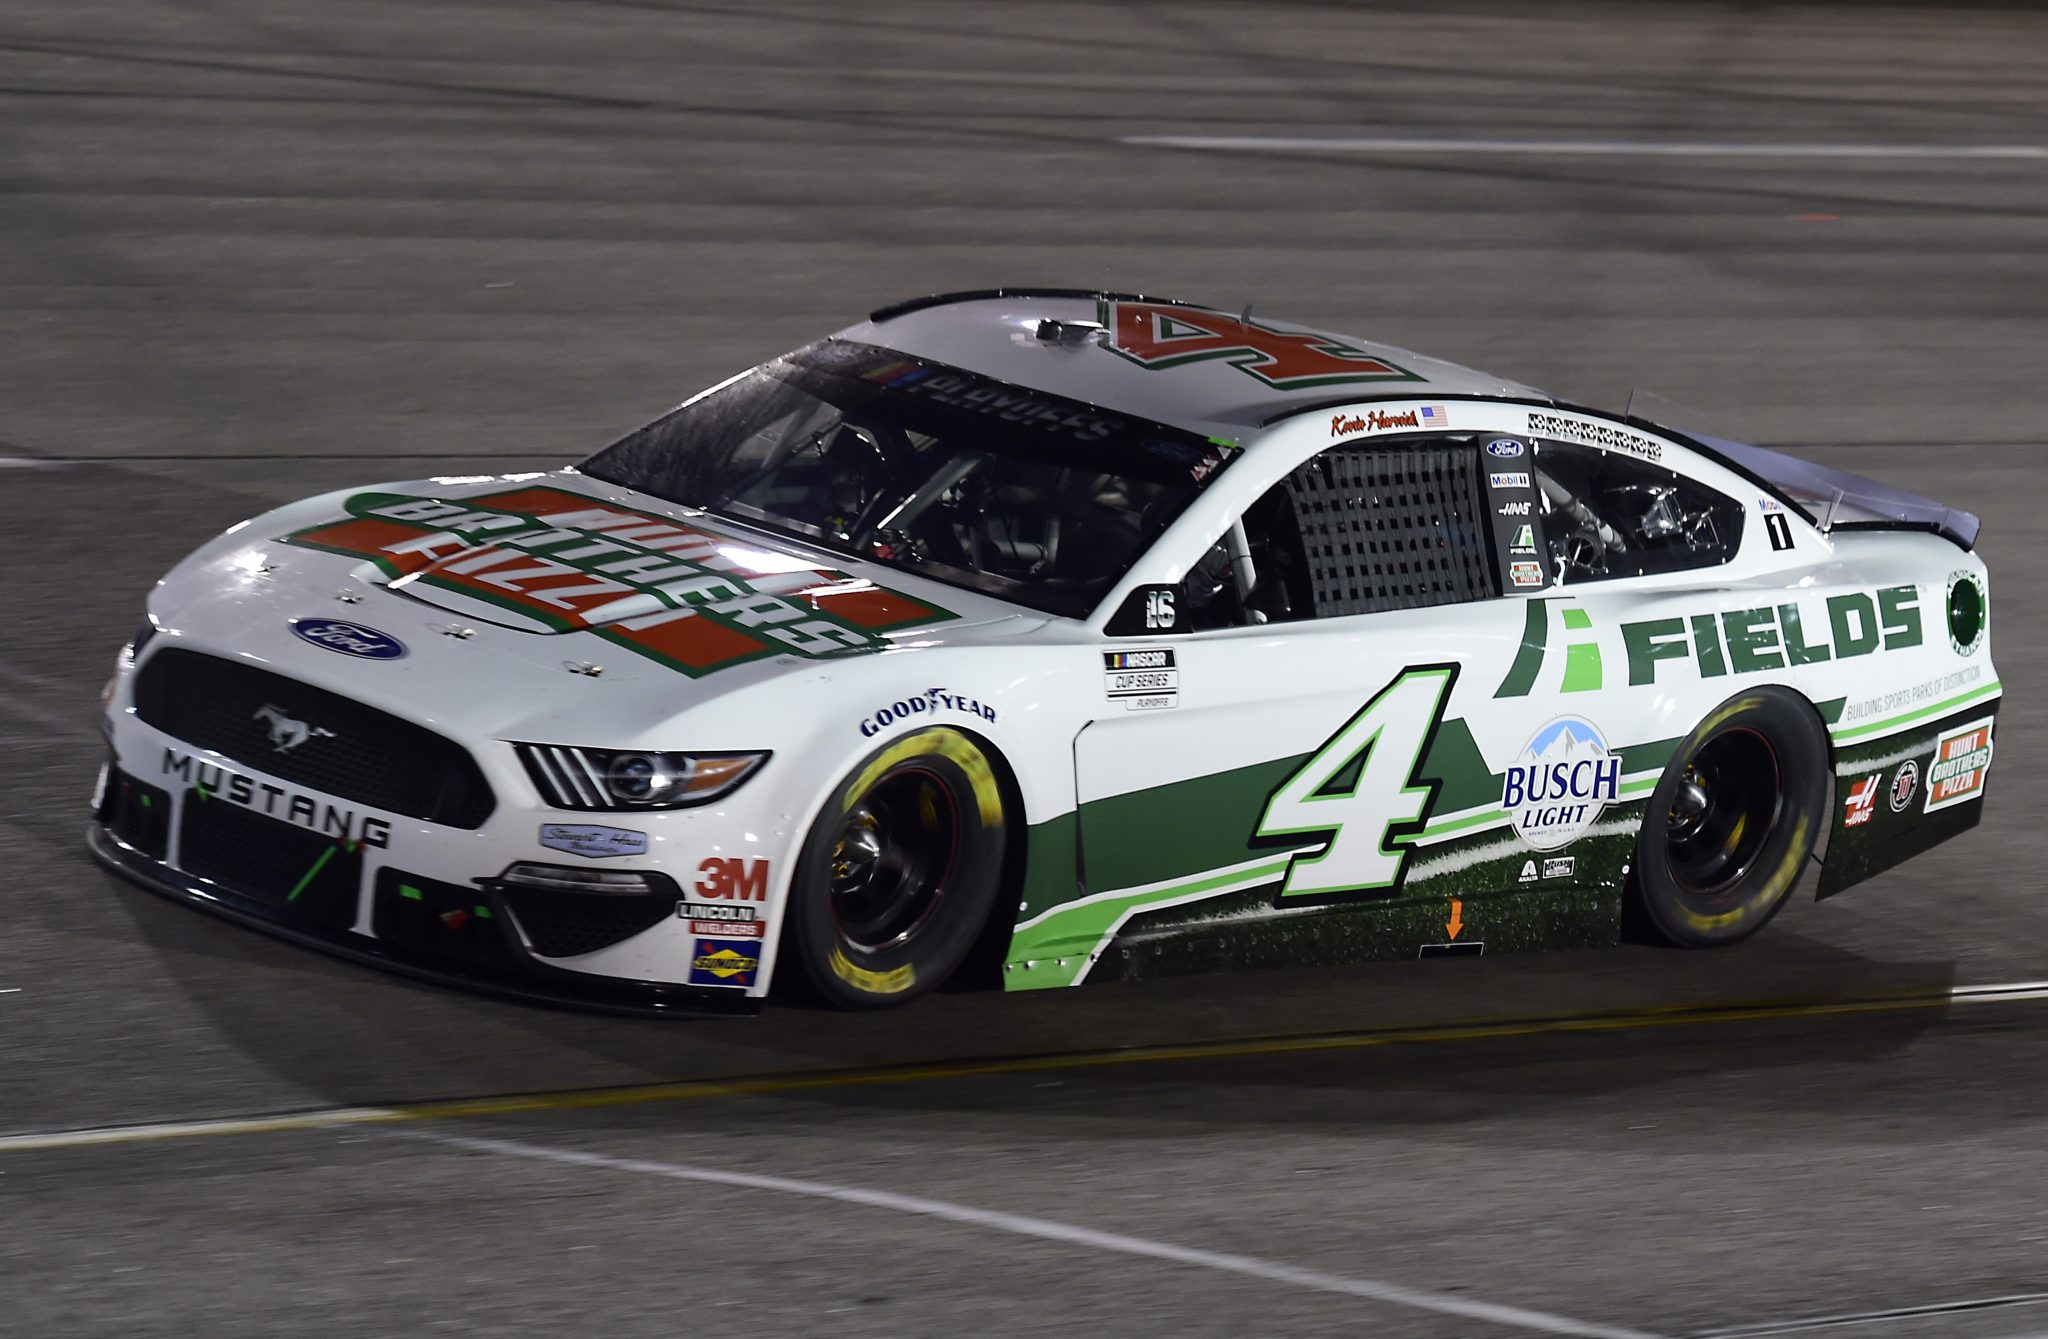 RICHMOND, VIRGINIA - SEPTEMBER 12: Kevin Harvick, driver of the #4 Hunt Brothers Pizza Ford, drives during the NASCAR Cup Series Federated Auto Parts 400 at Richmond Raceway on September 12, 2020 in Richmond, Virginia. (Photo by Jared C. Tilton/Getty Images) | Getty Images